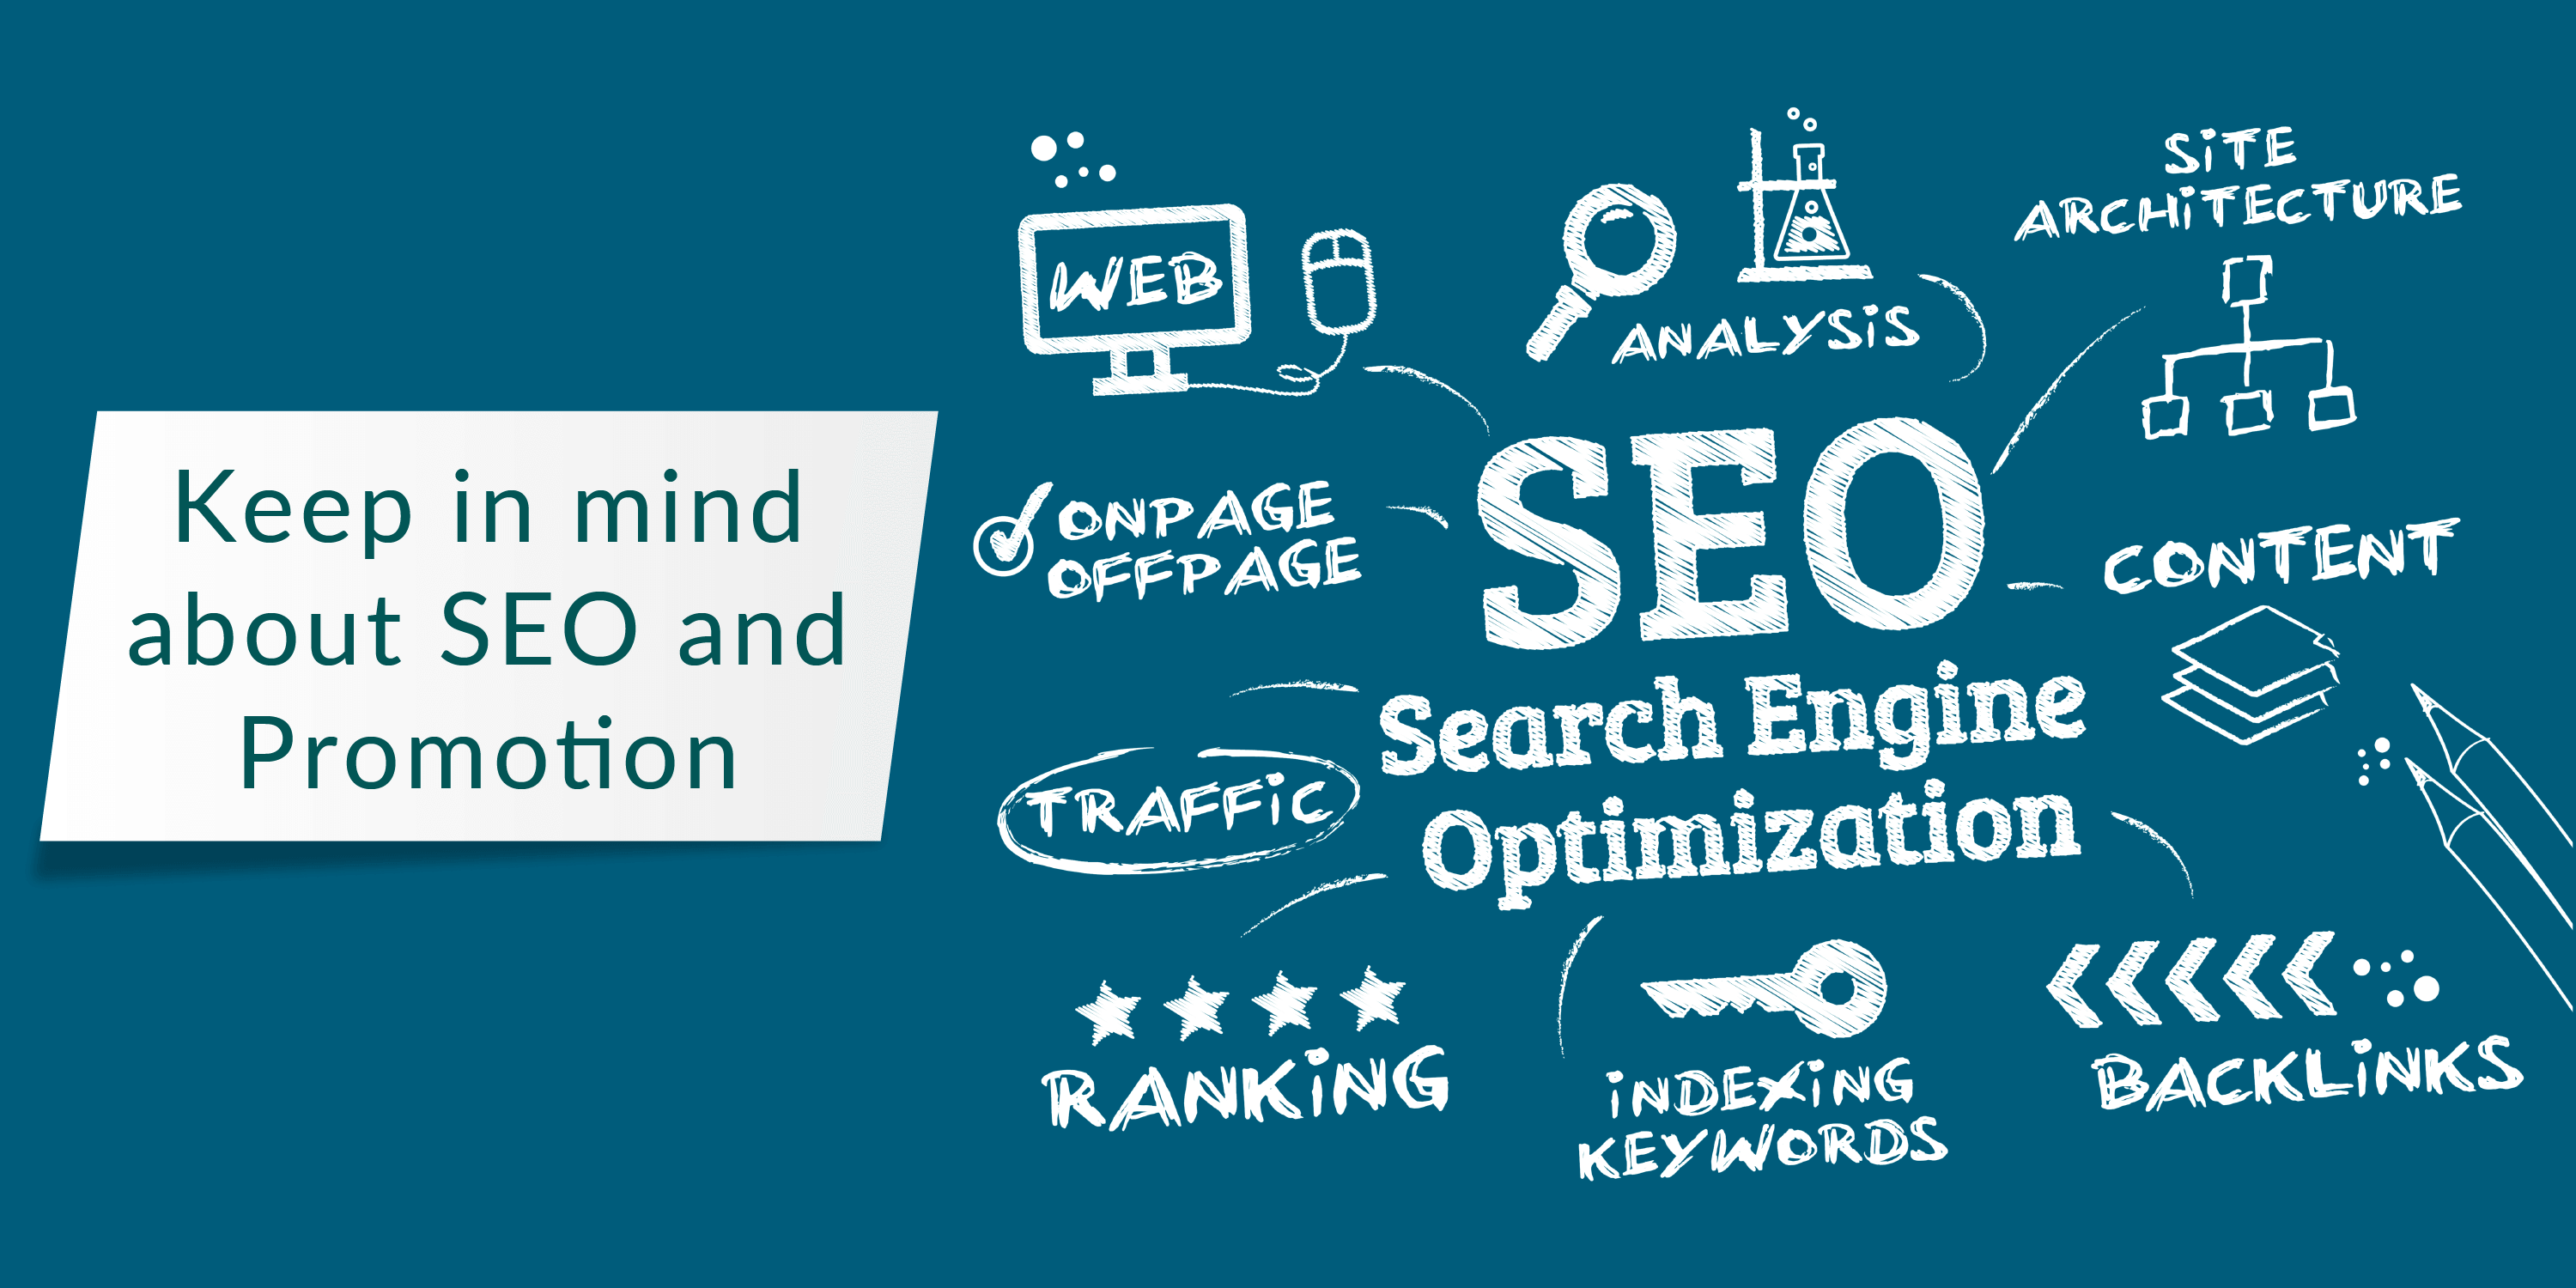 KEEP IN MIND ABOUT SEO AND PROMOTION